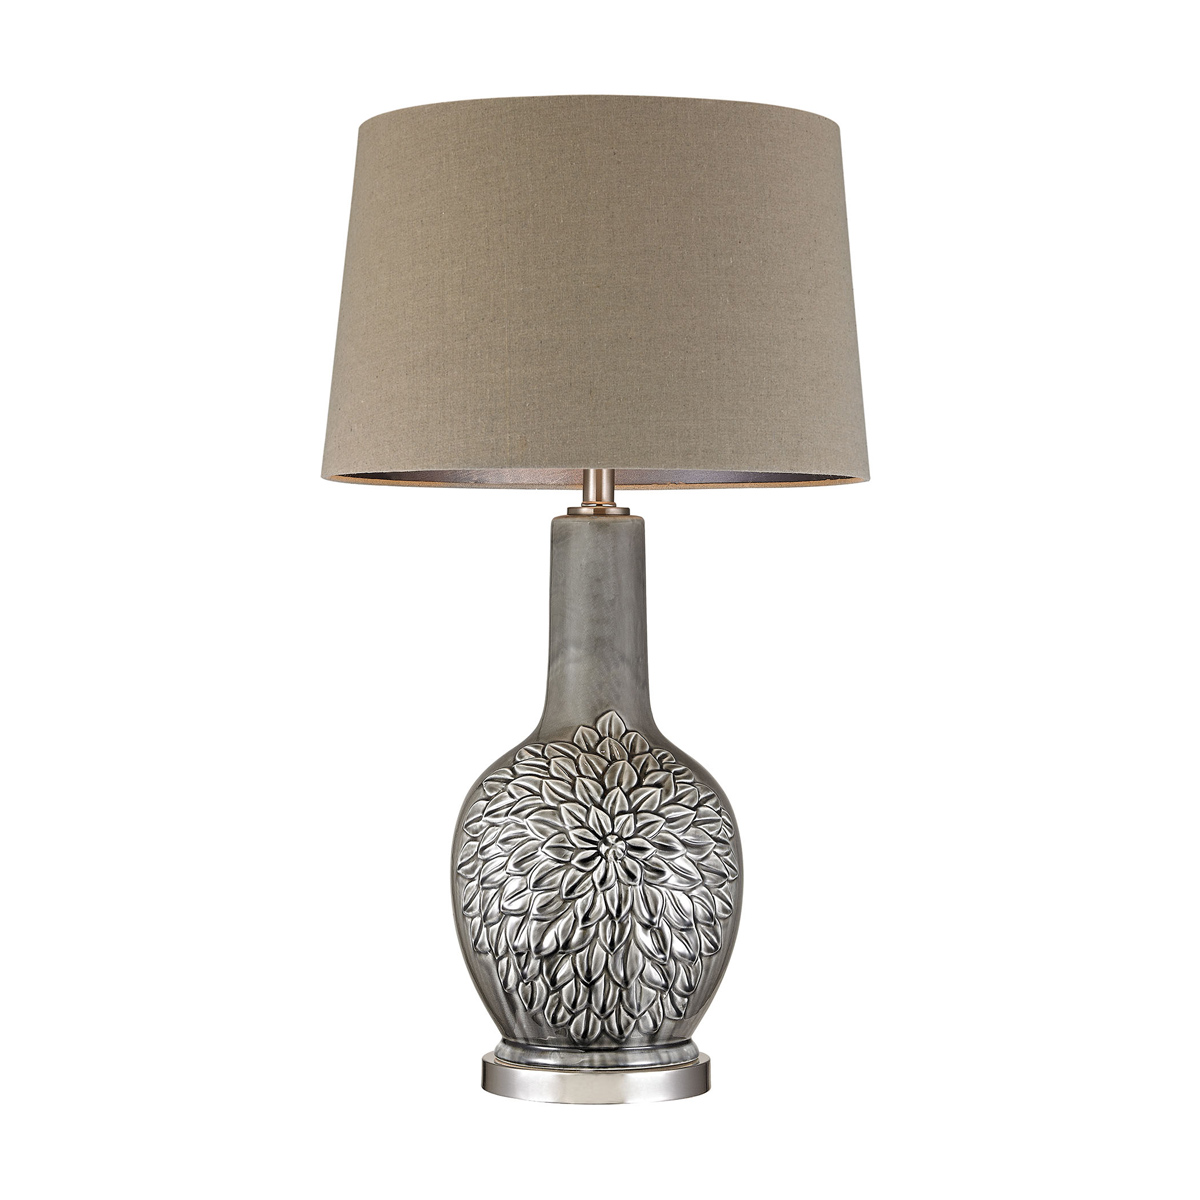 Gray Glazed Floral Lamp